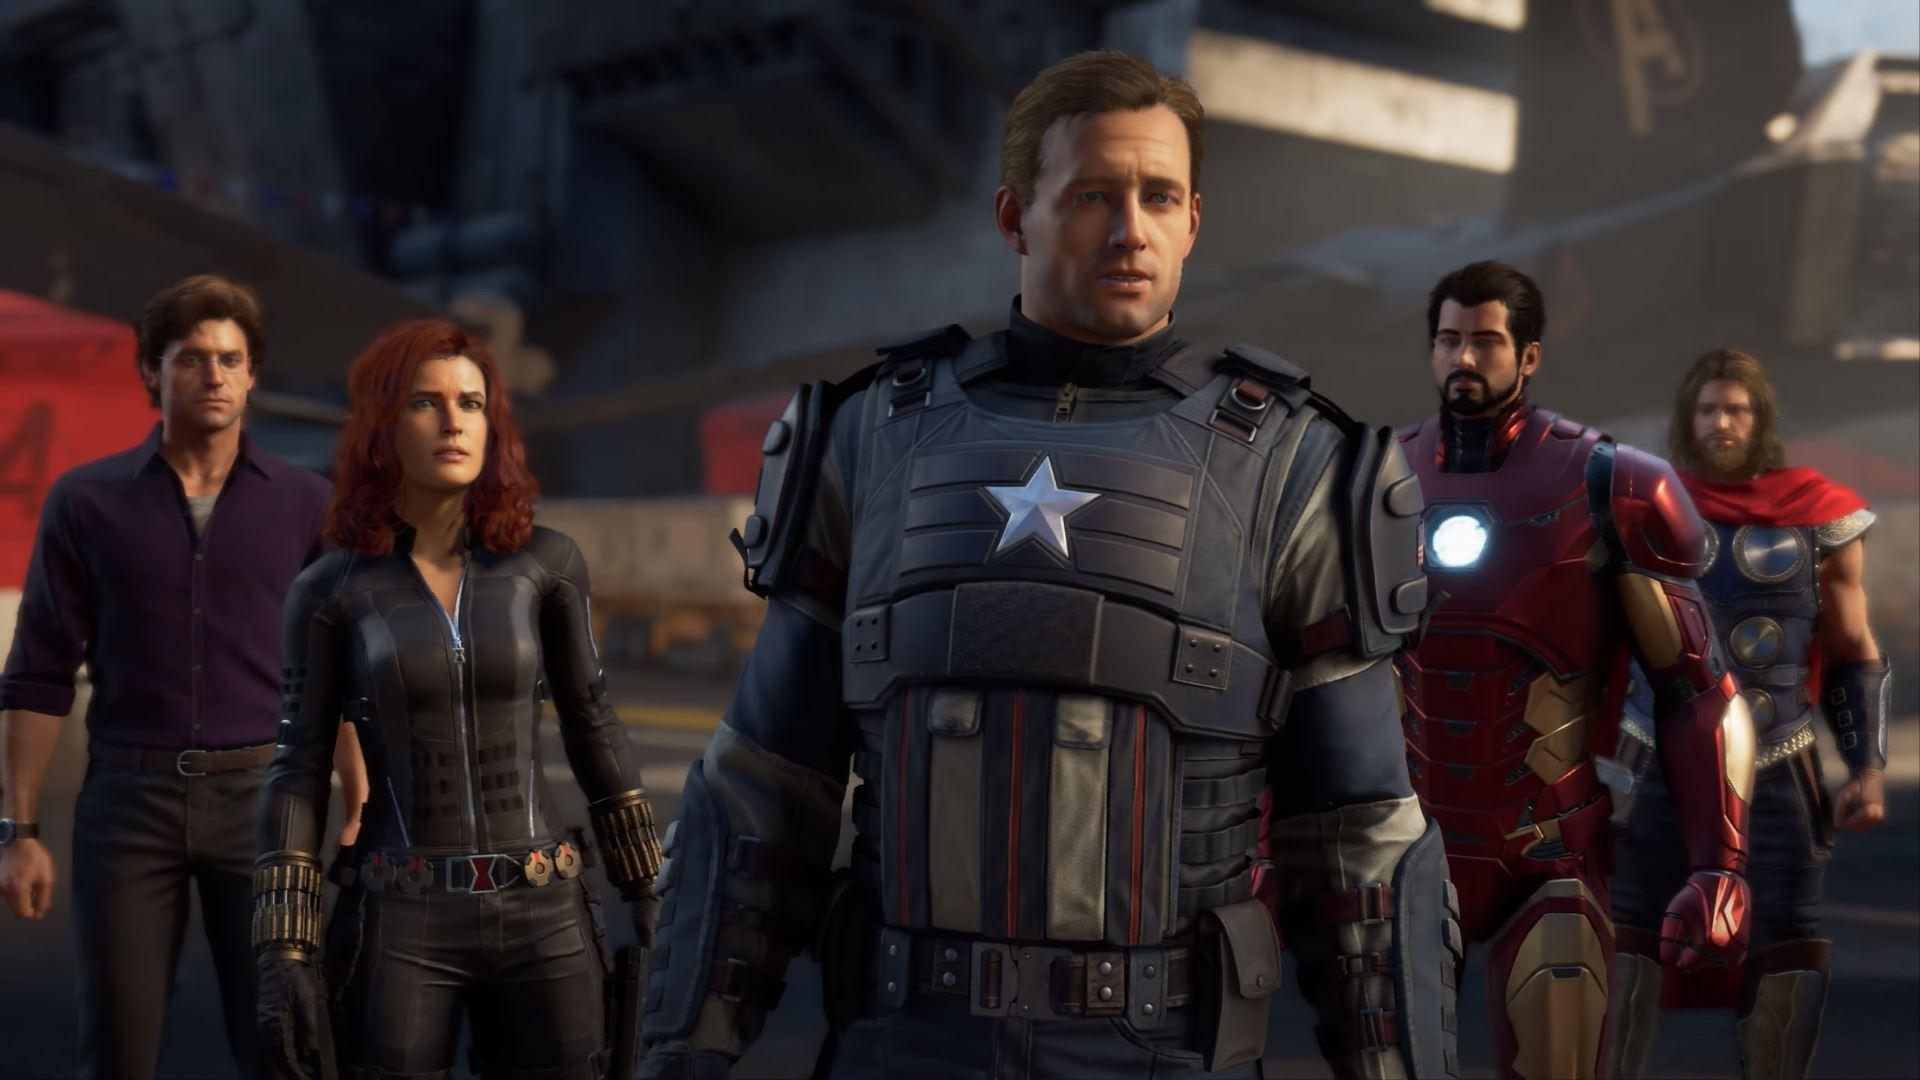 The Avengers Project: Square Enix Game Release Date, Trailer, and